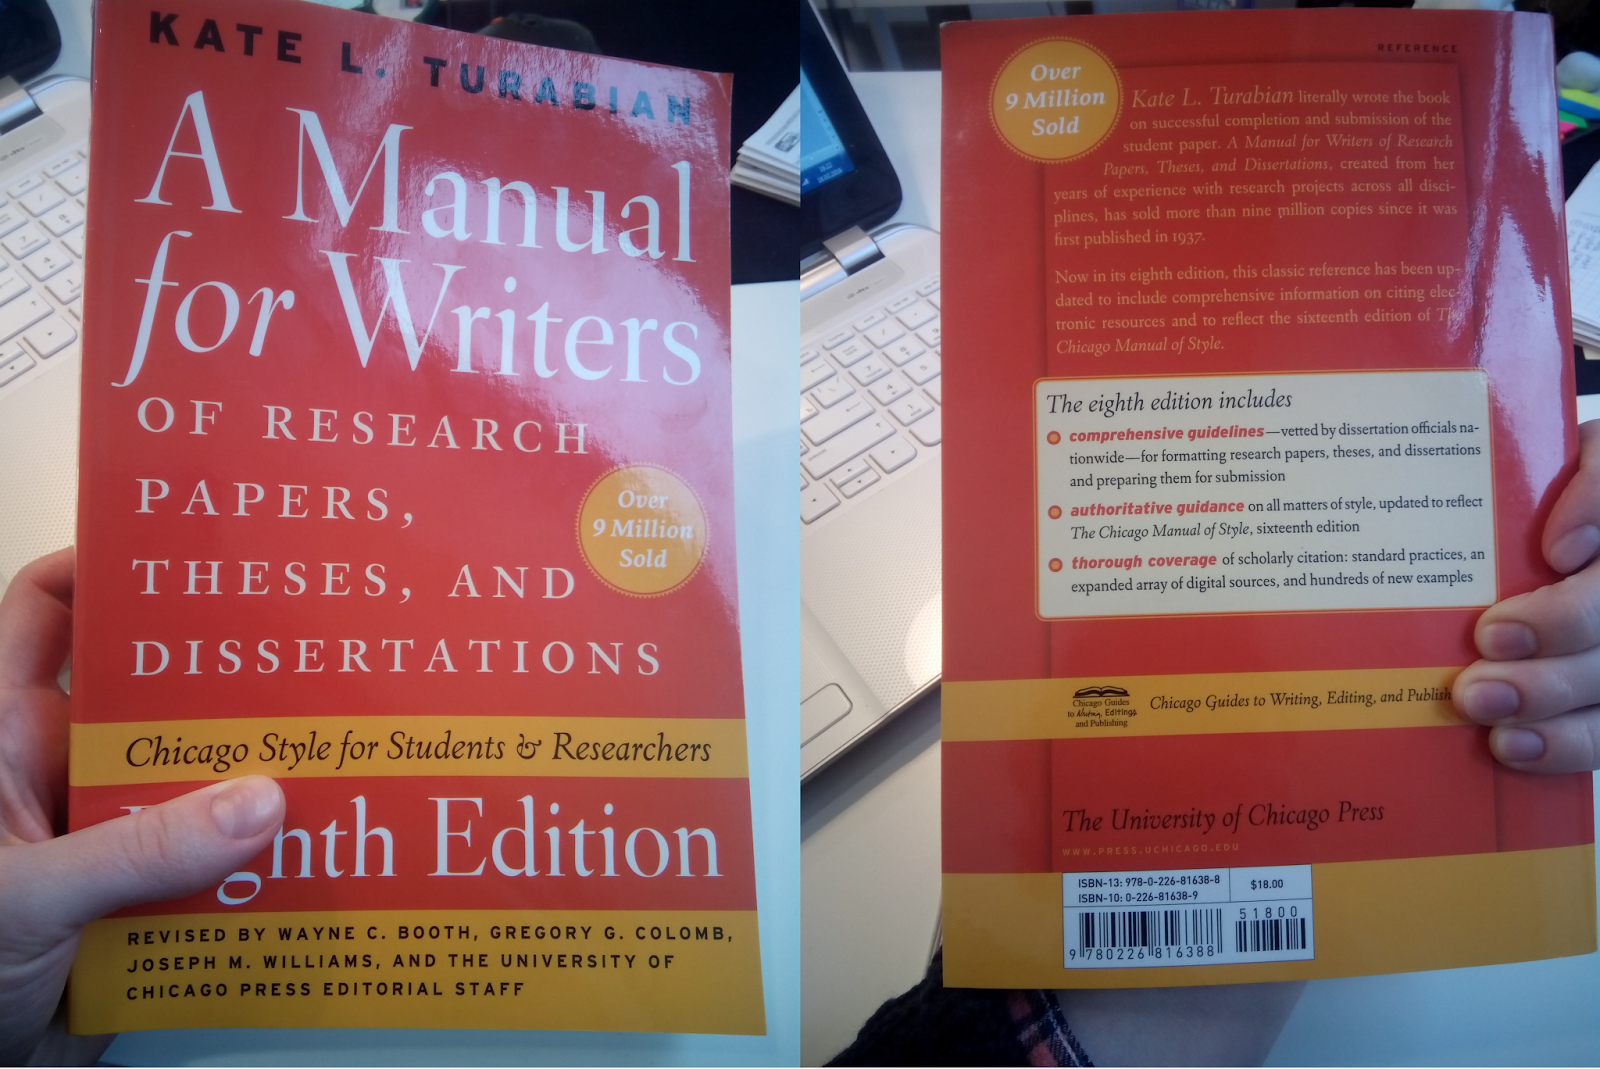 019 Manual For Writers Of Research Papers Theses And Dissertations Paper Magnificent 8th 13 A 9th Edition Apa Full